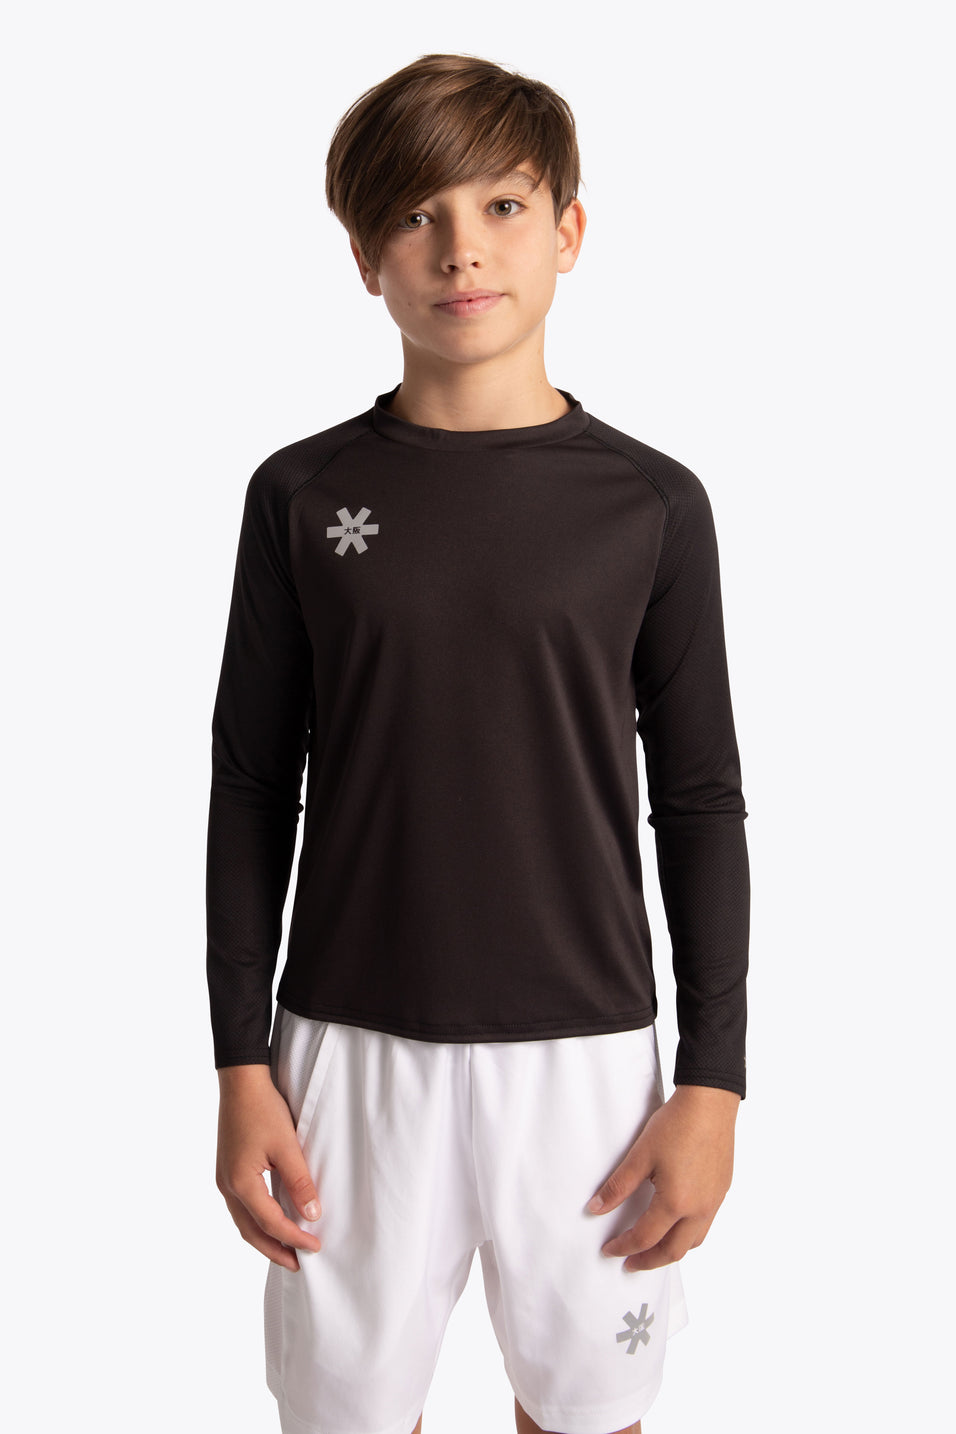 Kids training tee long sleeve